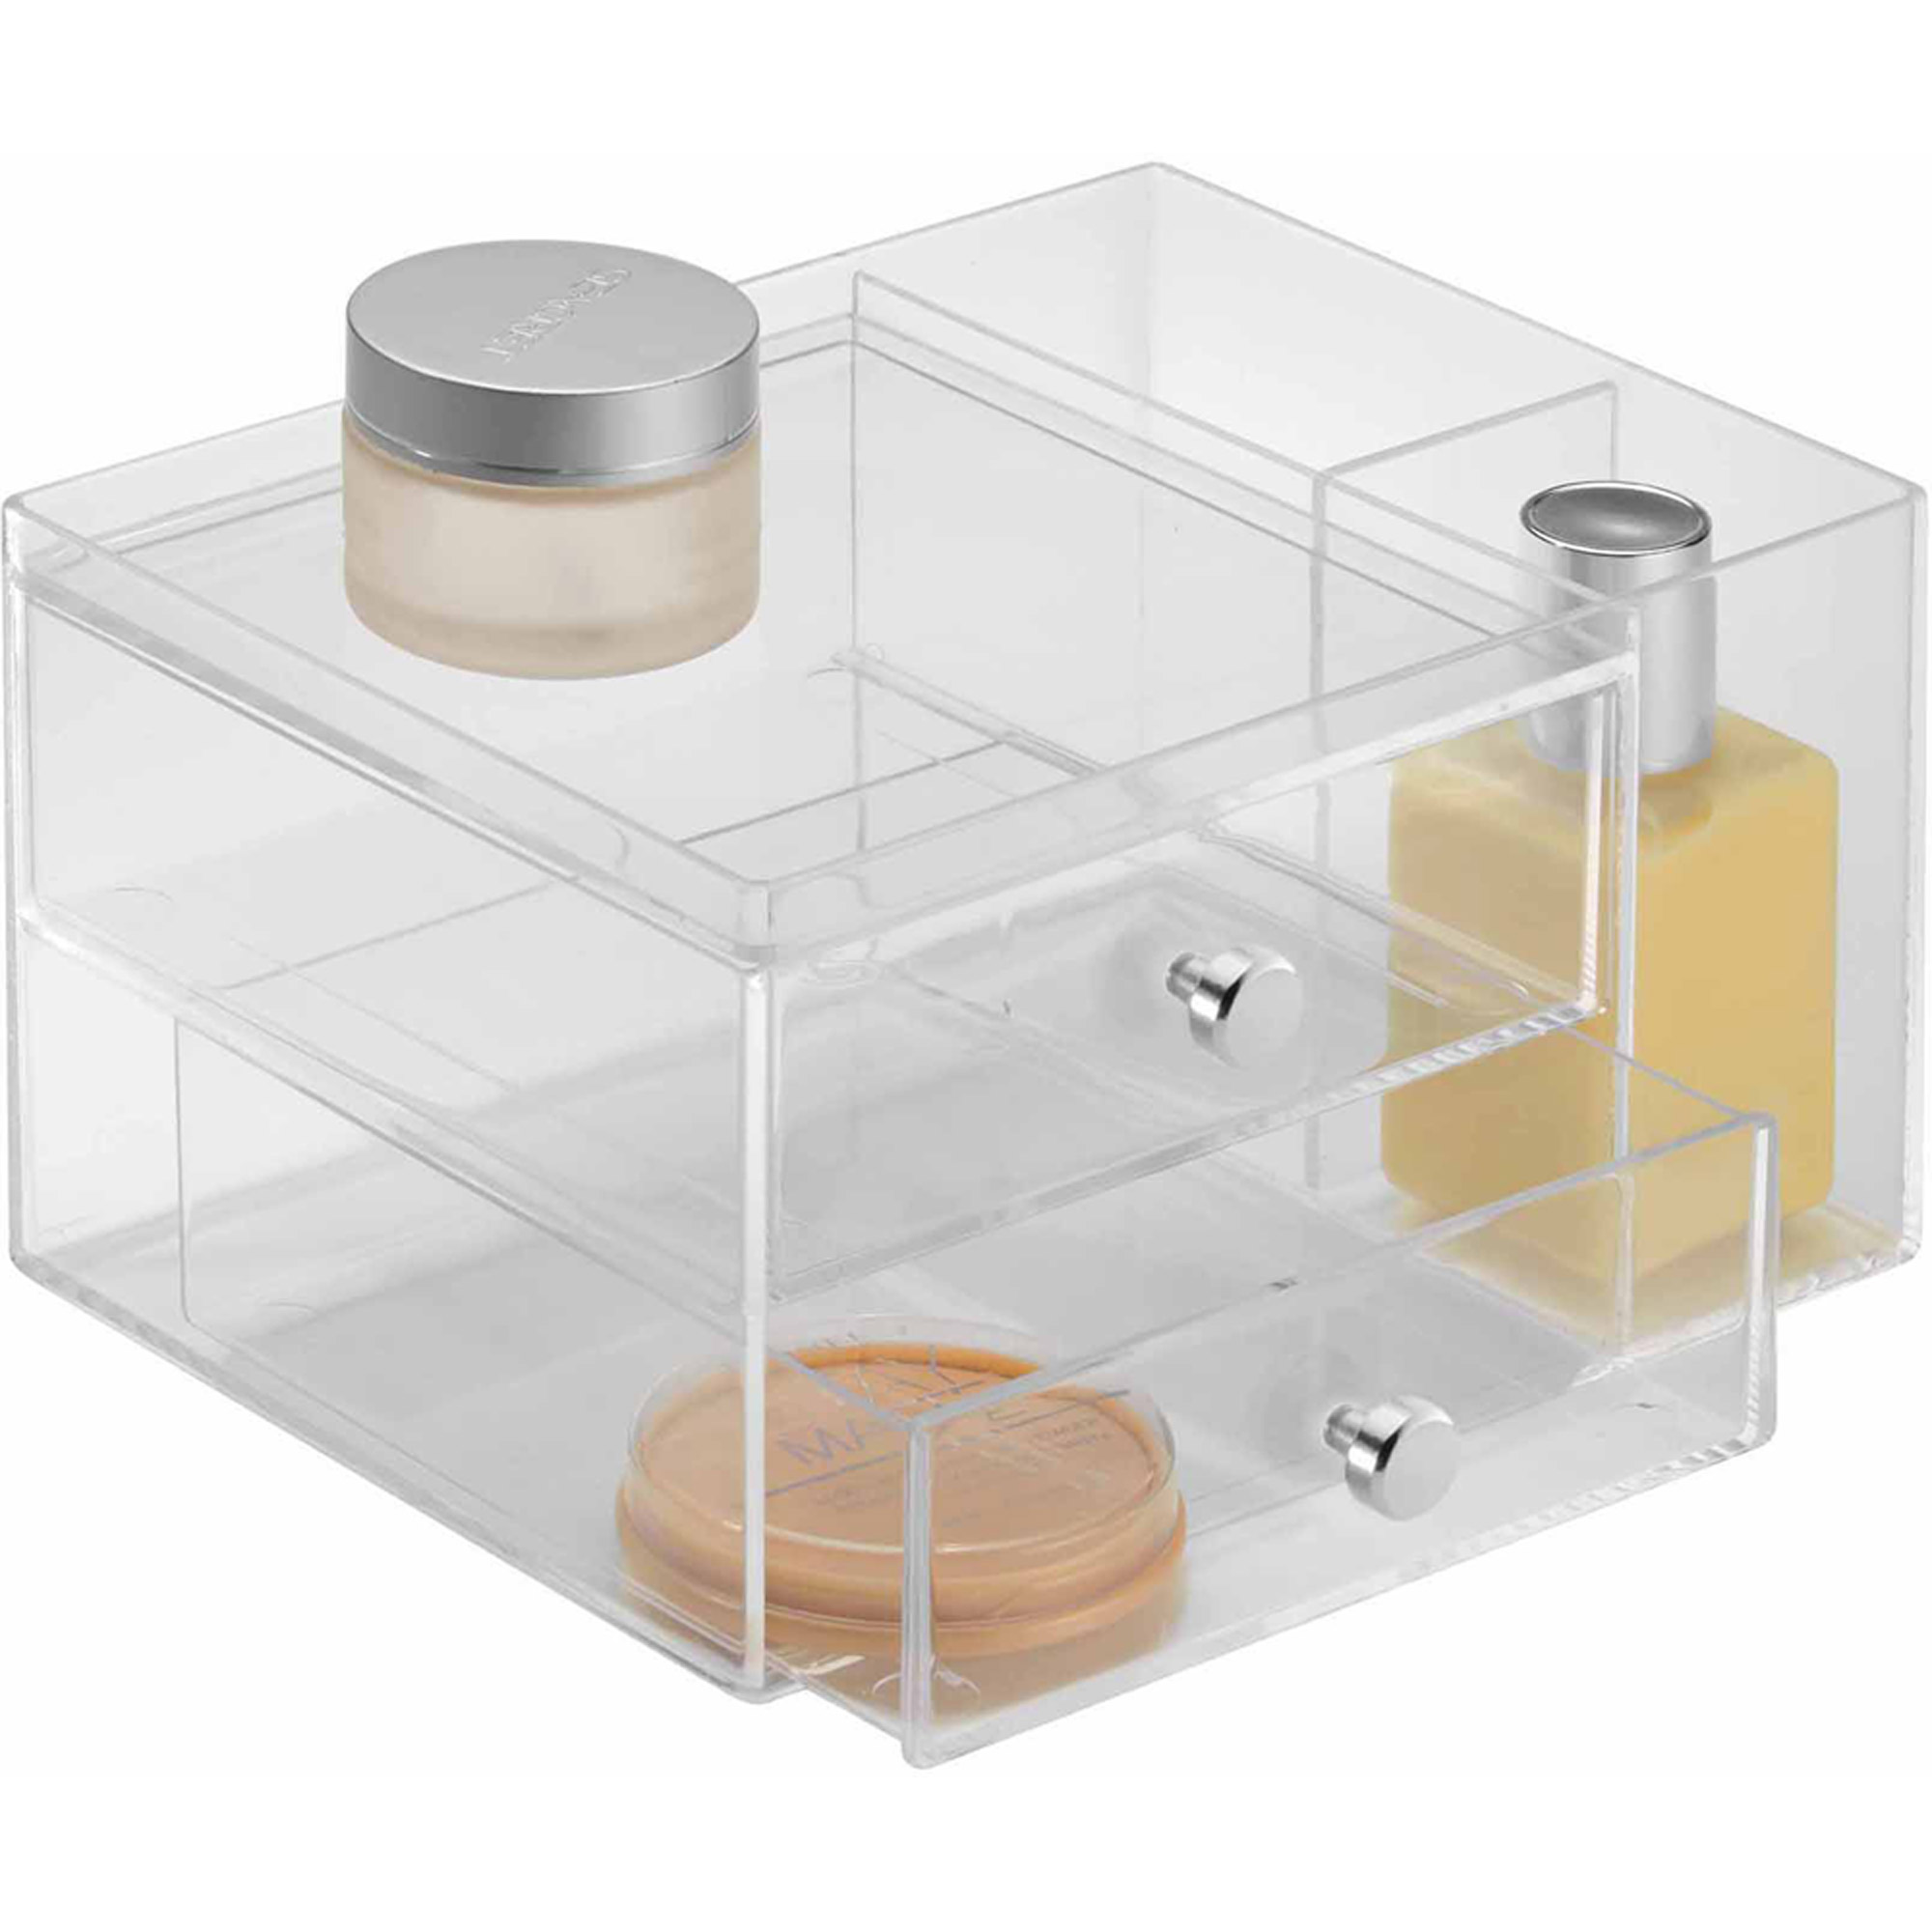 makeup organizer drawers walmart. interdesign clarity cosmetic organizer for vanity cabinet to hold makeup, beauty products, 2 drawer with side caddy, clear - walmart.com makeup drawers walmart e